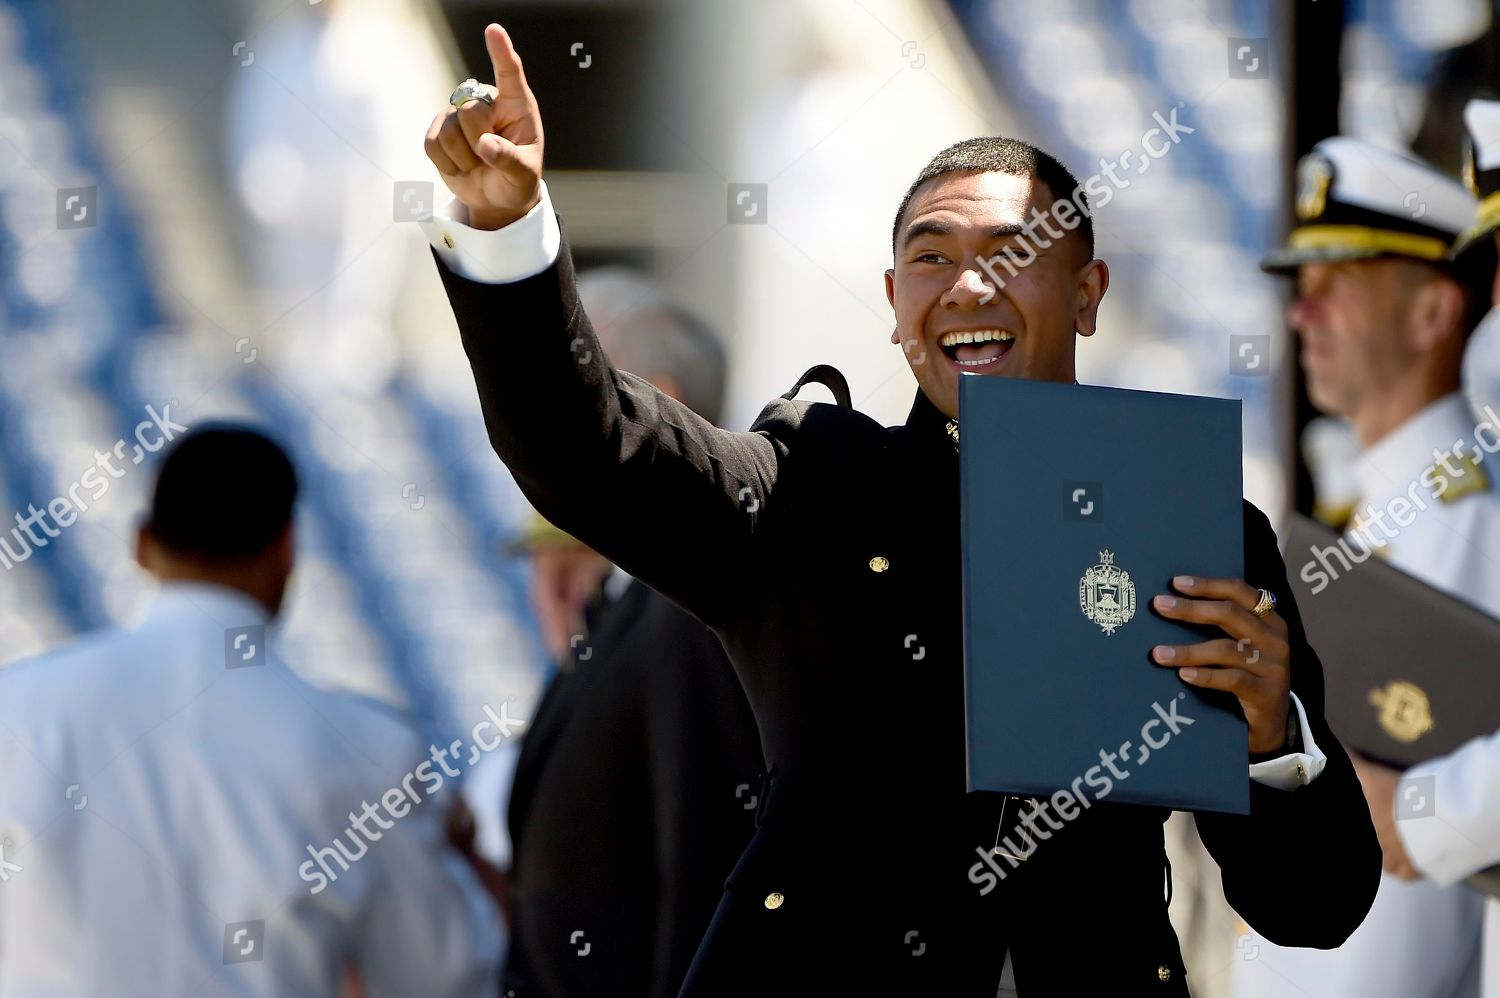 Naval Academy graduate celebrates after receiving their